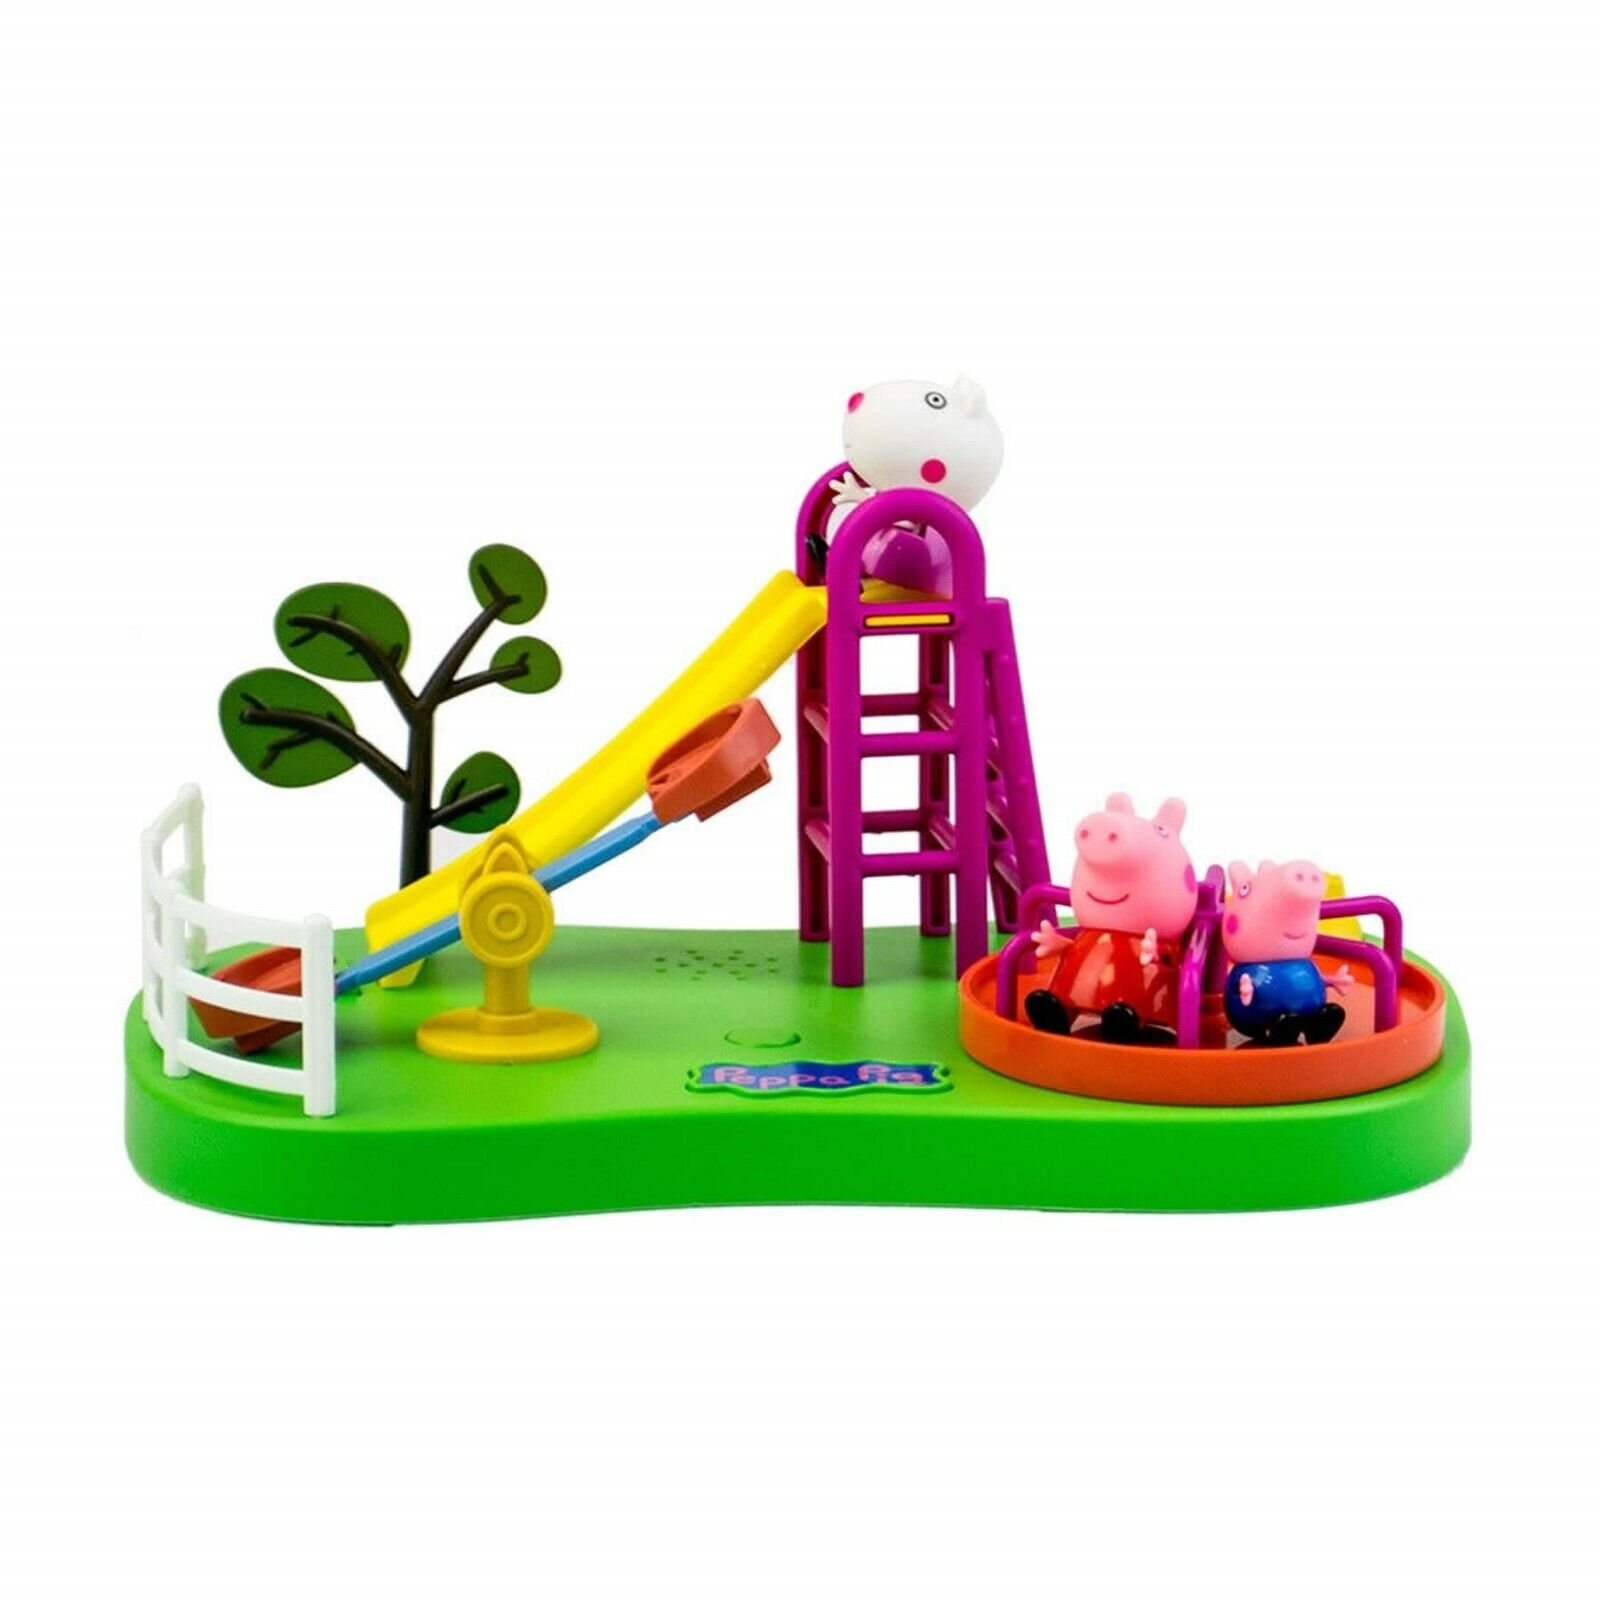 Peppa Pig Peppa/'s Playground Toy Playset With Figures /& Sound